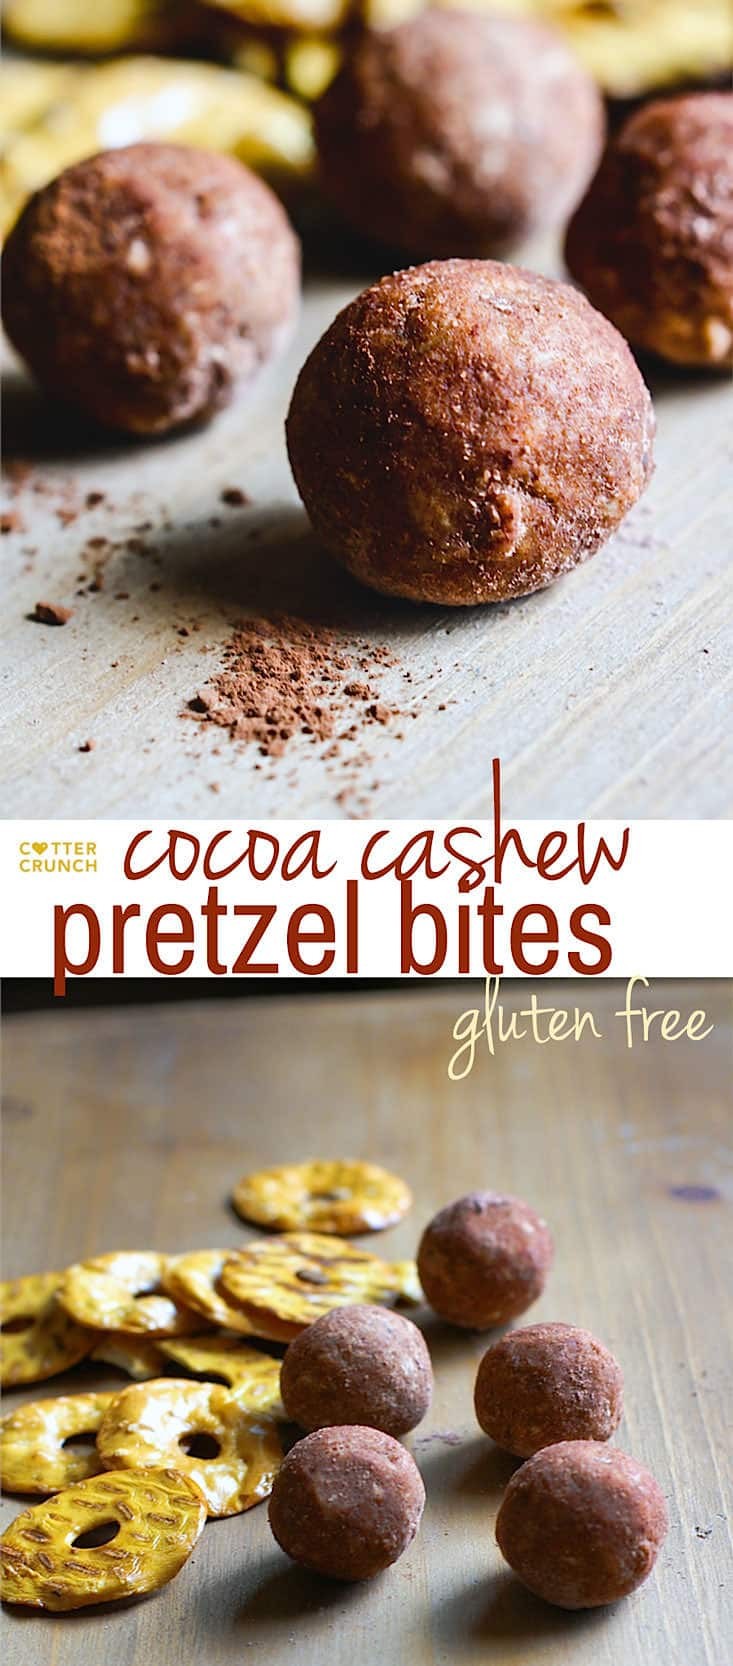 Cocoa Cashew Pretzel Gluten Free Energy Bites! A sweet and salty combo that takes snacking to a whole new level! Dark Cocoa, Cashews, honey, peanut butter, and gluten free pretzel chips all packed into one healthy energy bite! Great for kids, post workout refueling, or just as an afternoon snack!